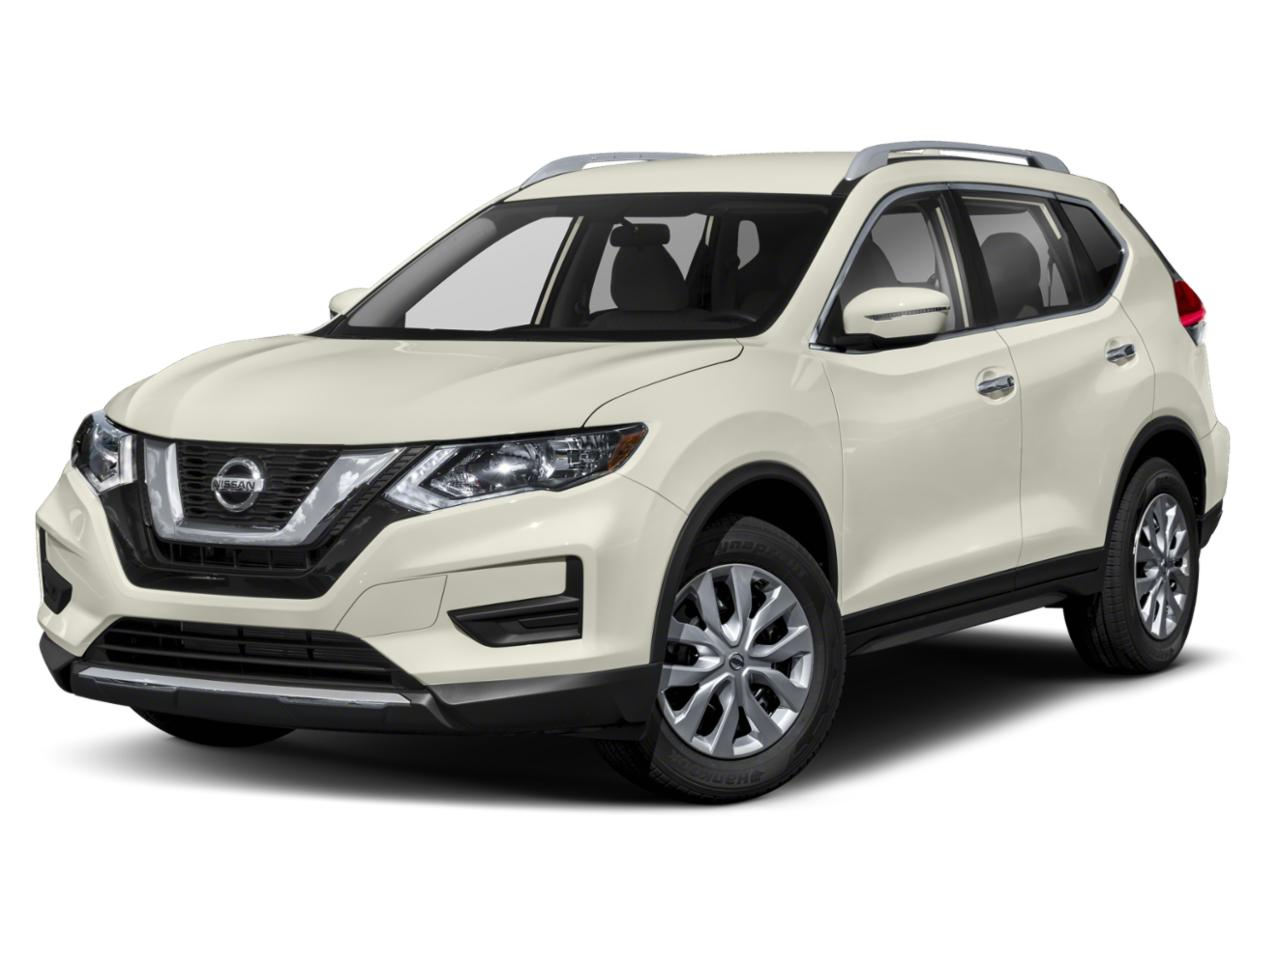 2019 Nissan Rogue Vehicle Photo in MADISON, WI 53713-3220